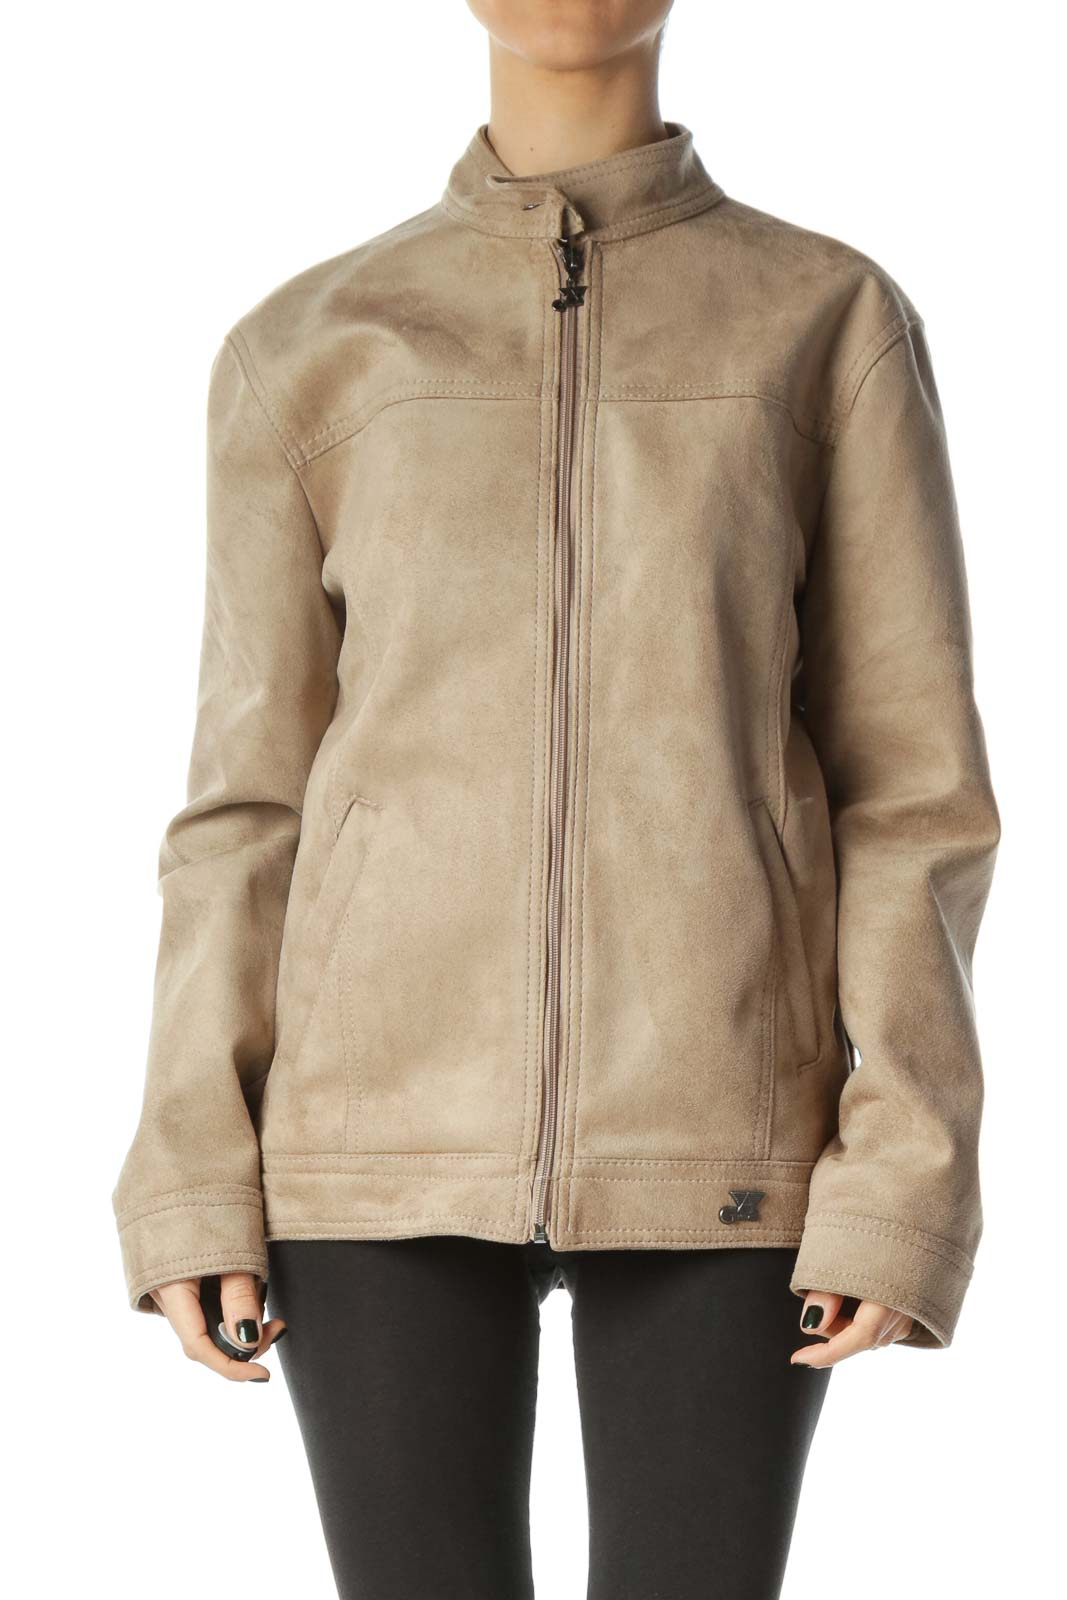 Beige Suede Body Pocketed Zippered Jacket Front